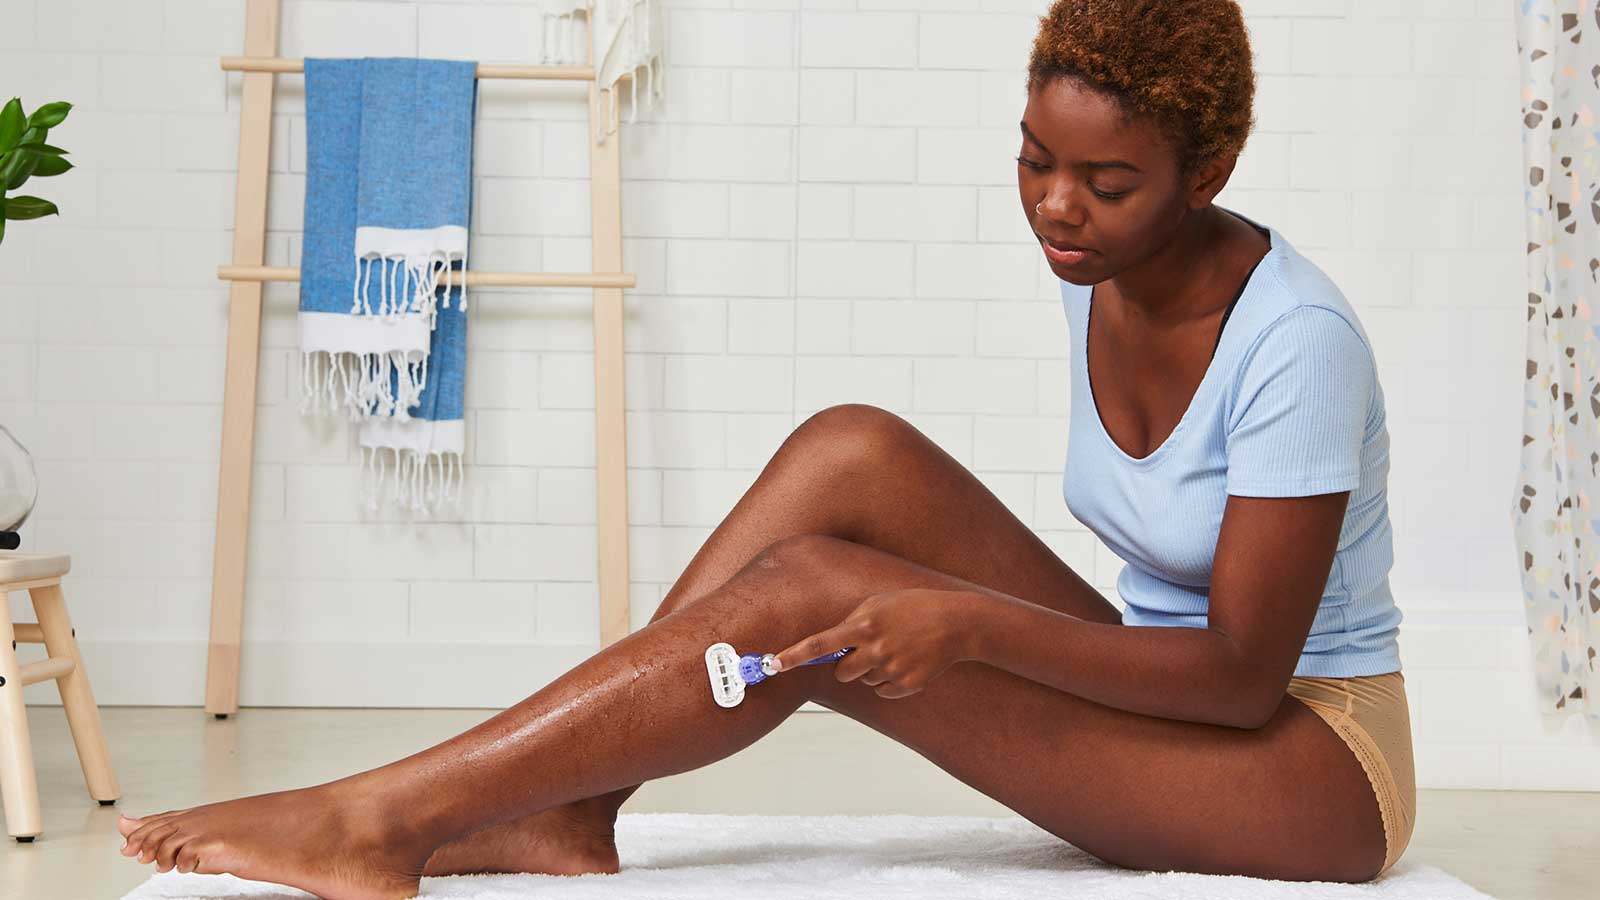 Woman Sitting on Bathroom Floor and Shaving Her Legs with Gillette Venus Razor